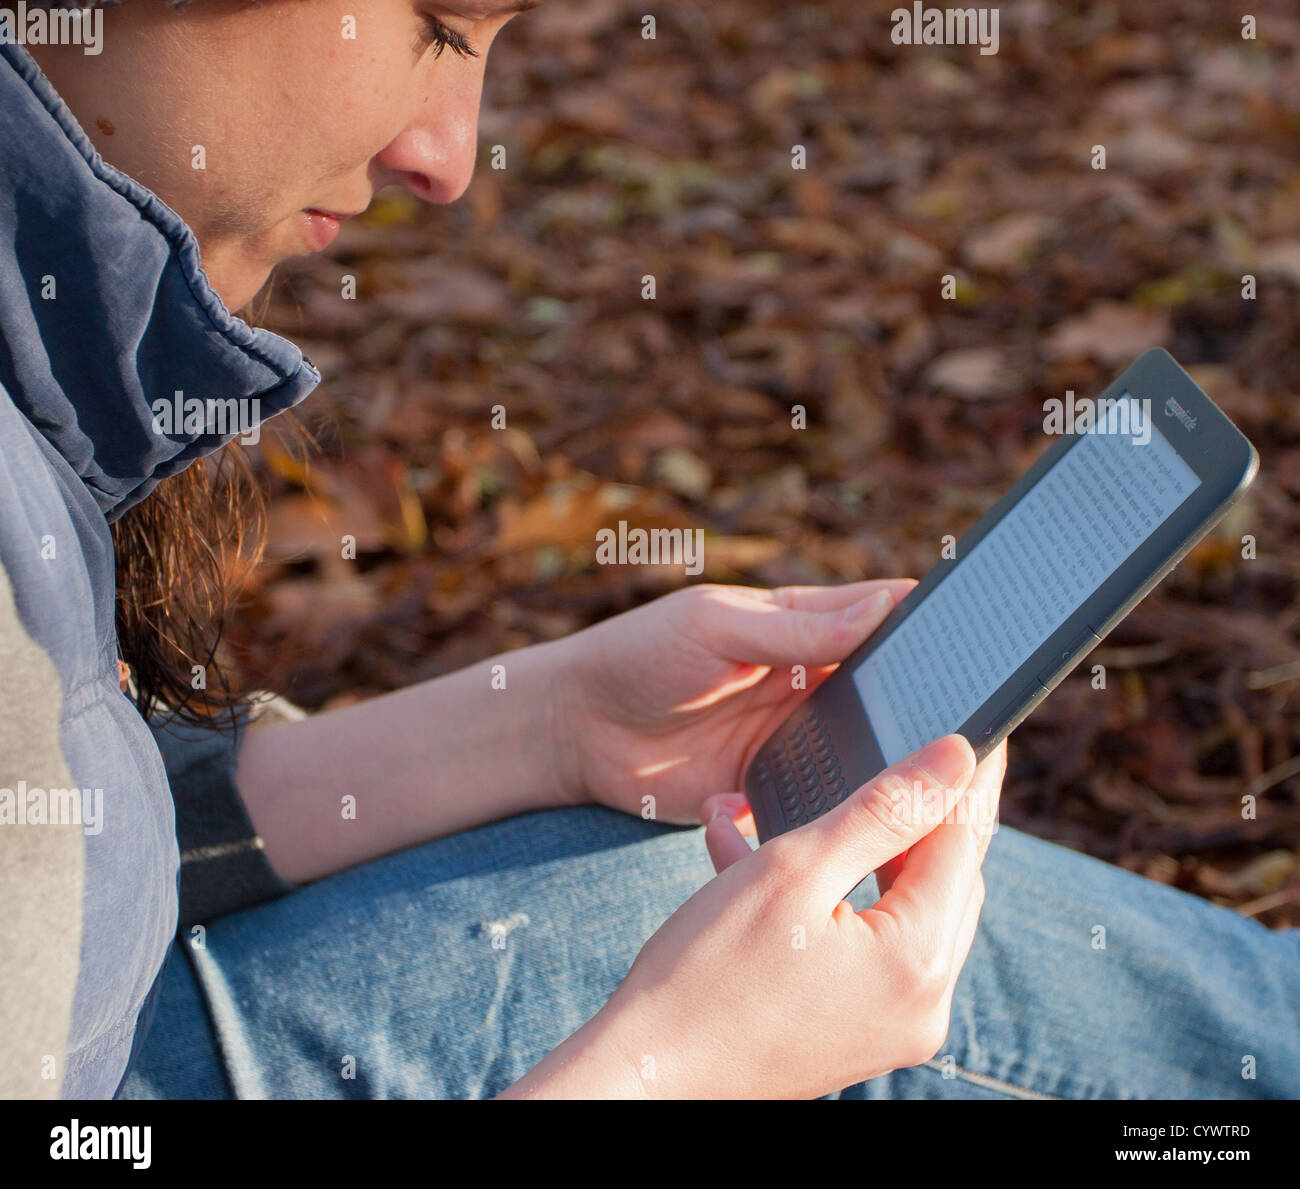 A woman sitting reads an Amazon Kindle ebook reader surrounded by Autumn leaves - Stock Image